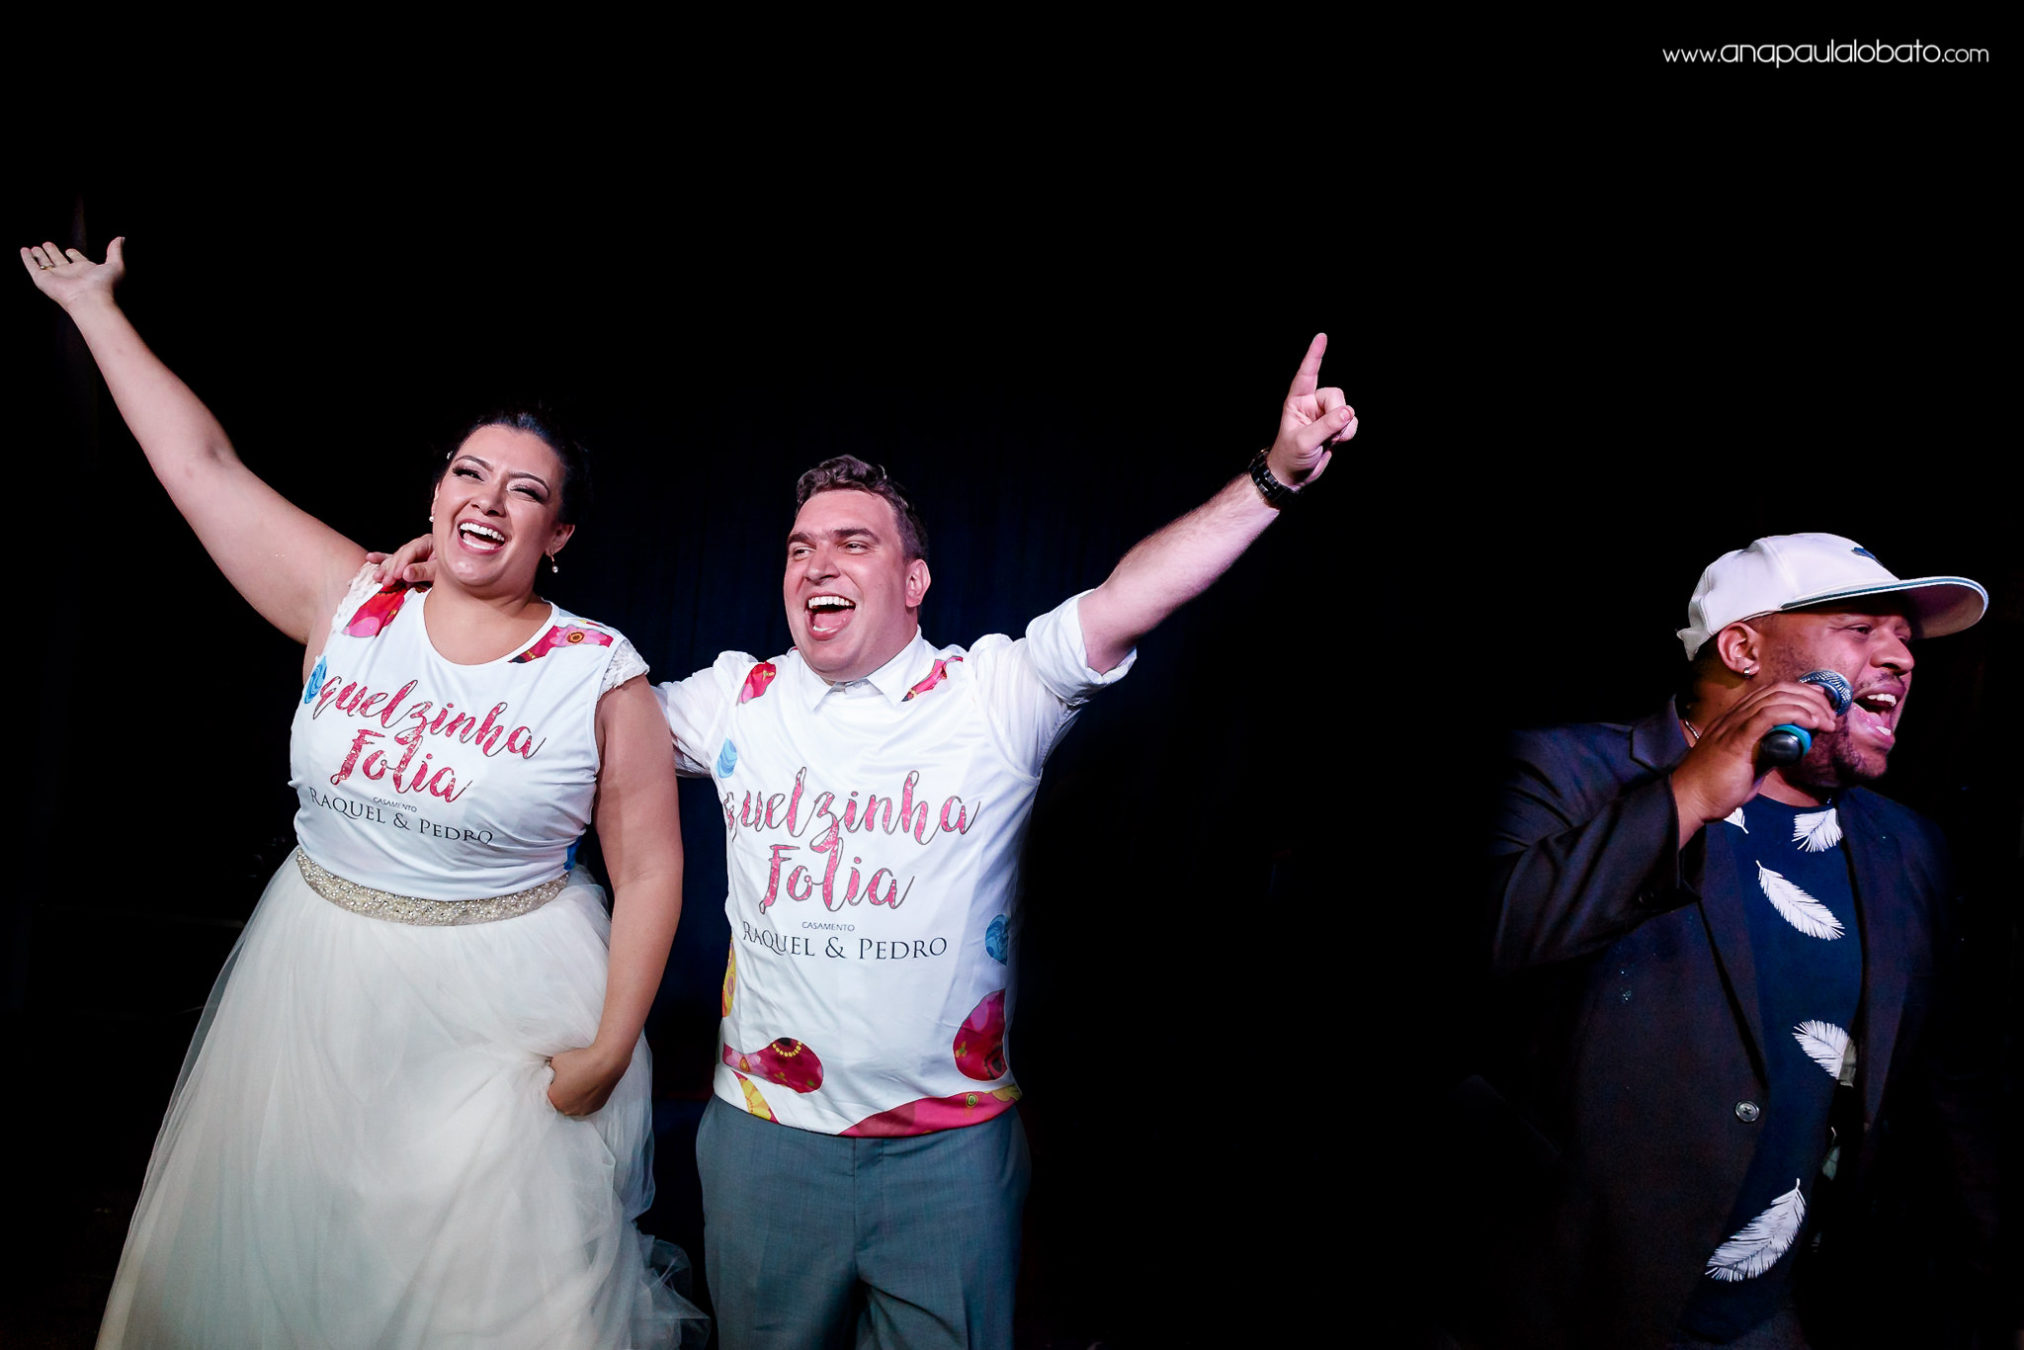 Couple celebrate their wedding with personalized shirts